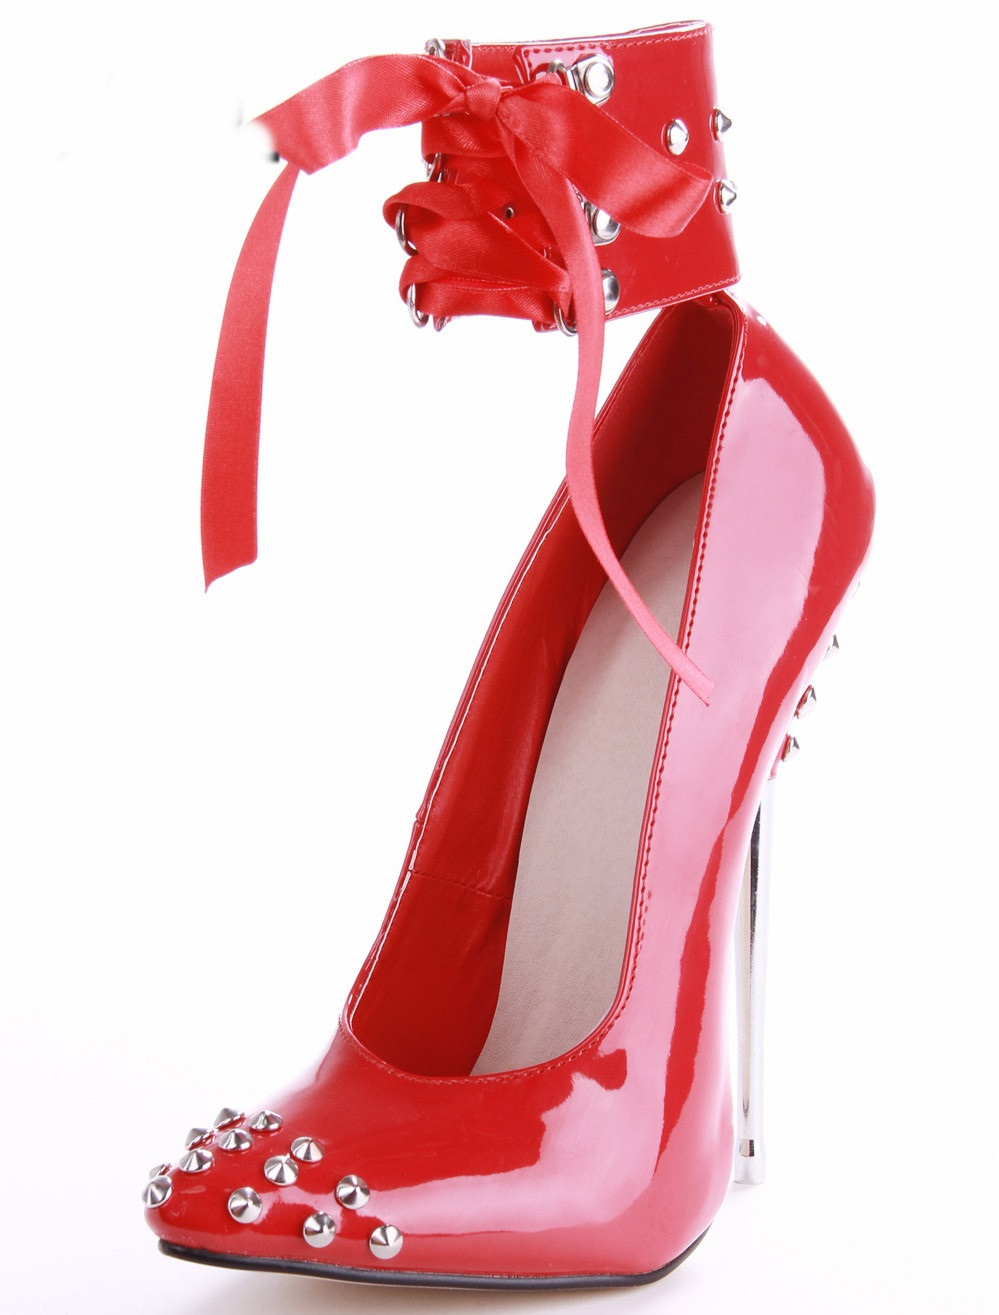 16cm Crystal Metal High Heels Pointed Toe Weeding Party Women Pumps Shoes Luxury Lace-up Beat Quality Ankle Sexy Black/Red/pur 2017pink pointed toe flock velvet women ankle wrap high heels party dress lady designer pumps shoes lace up stiletto shoes woman